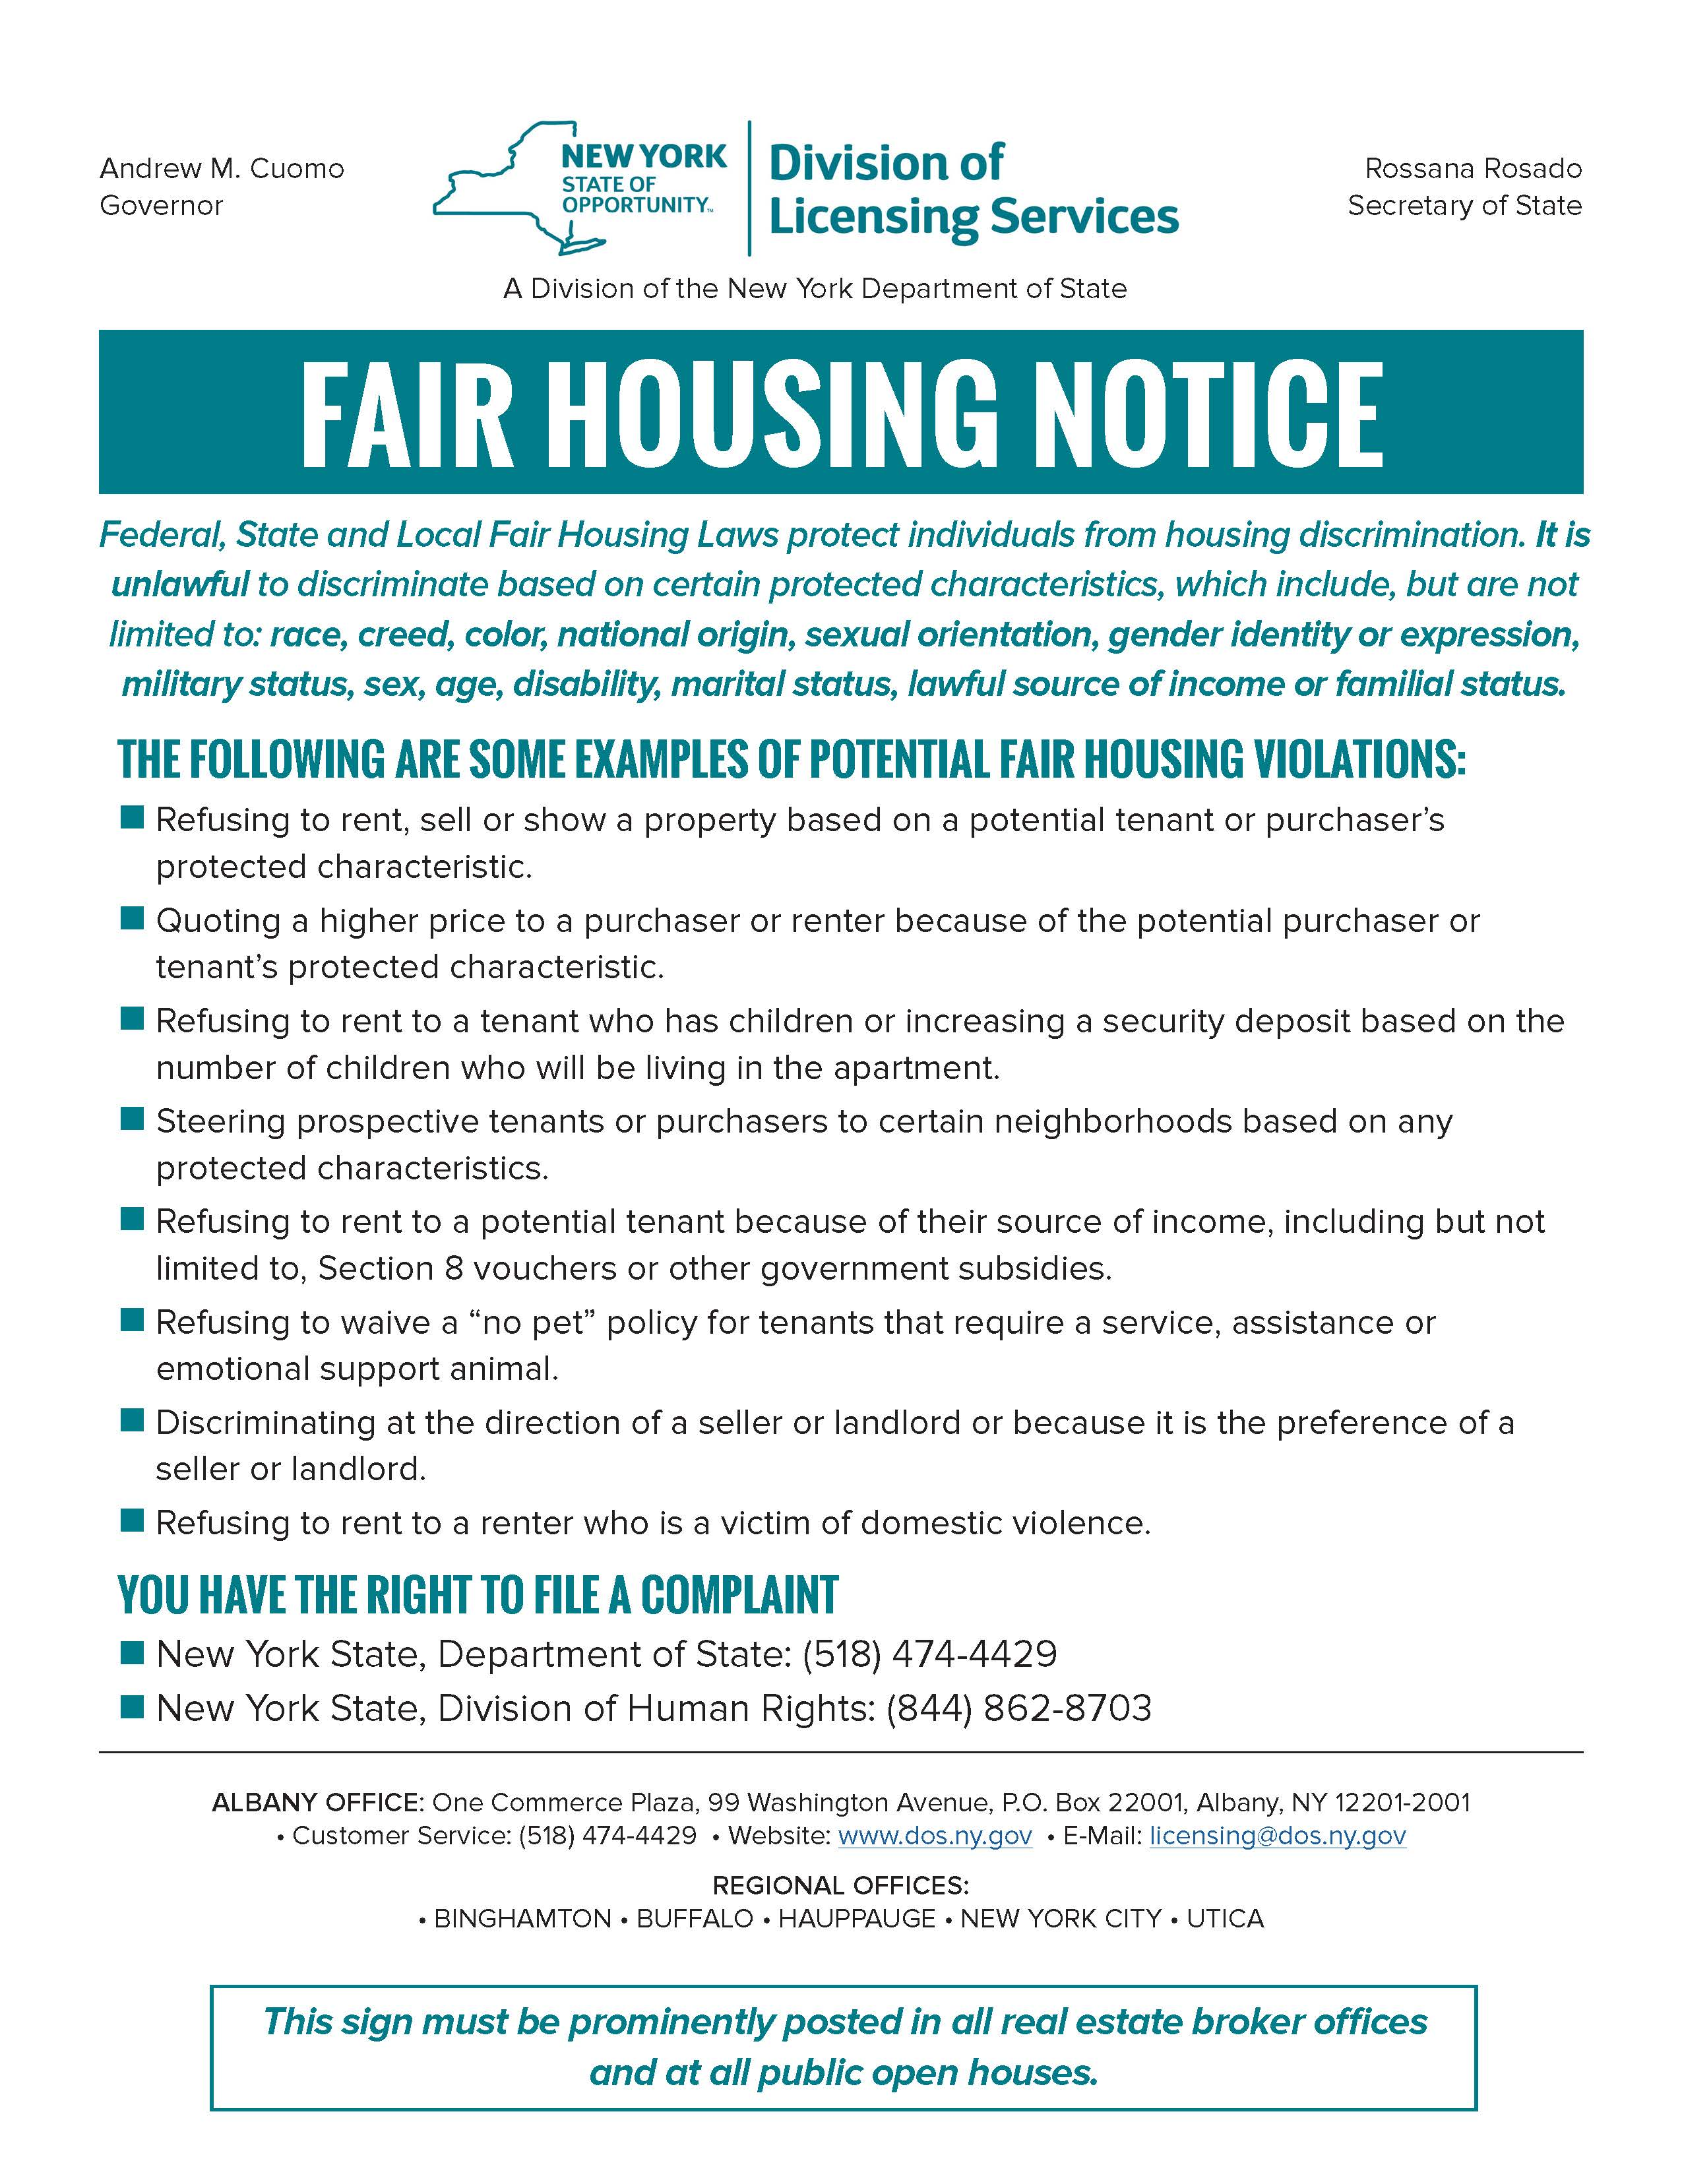 FairHousingNotice_new